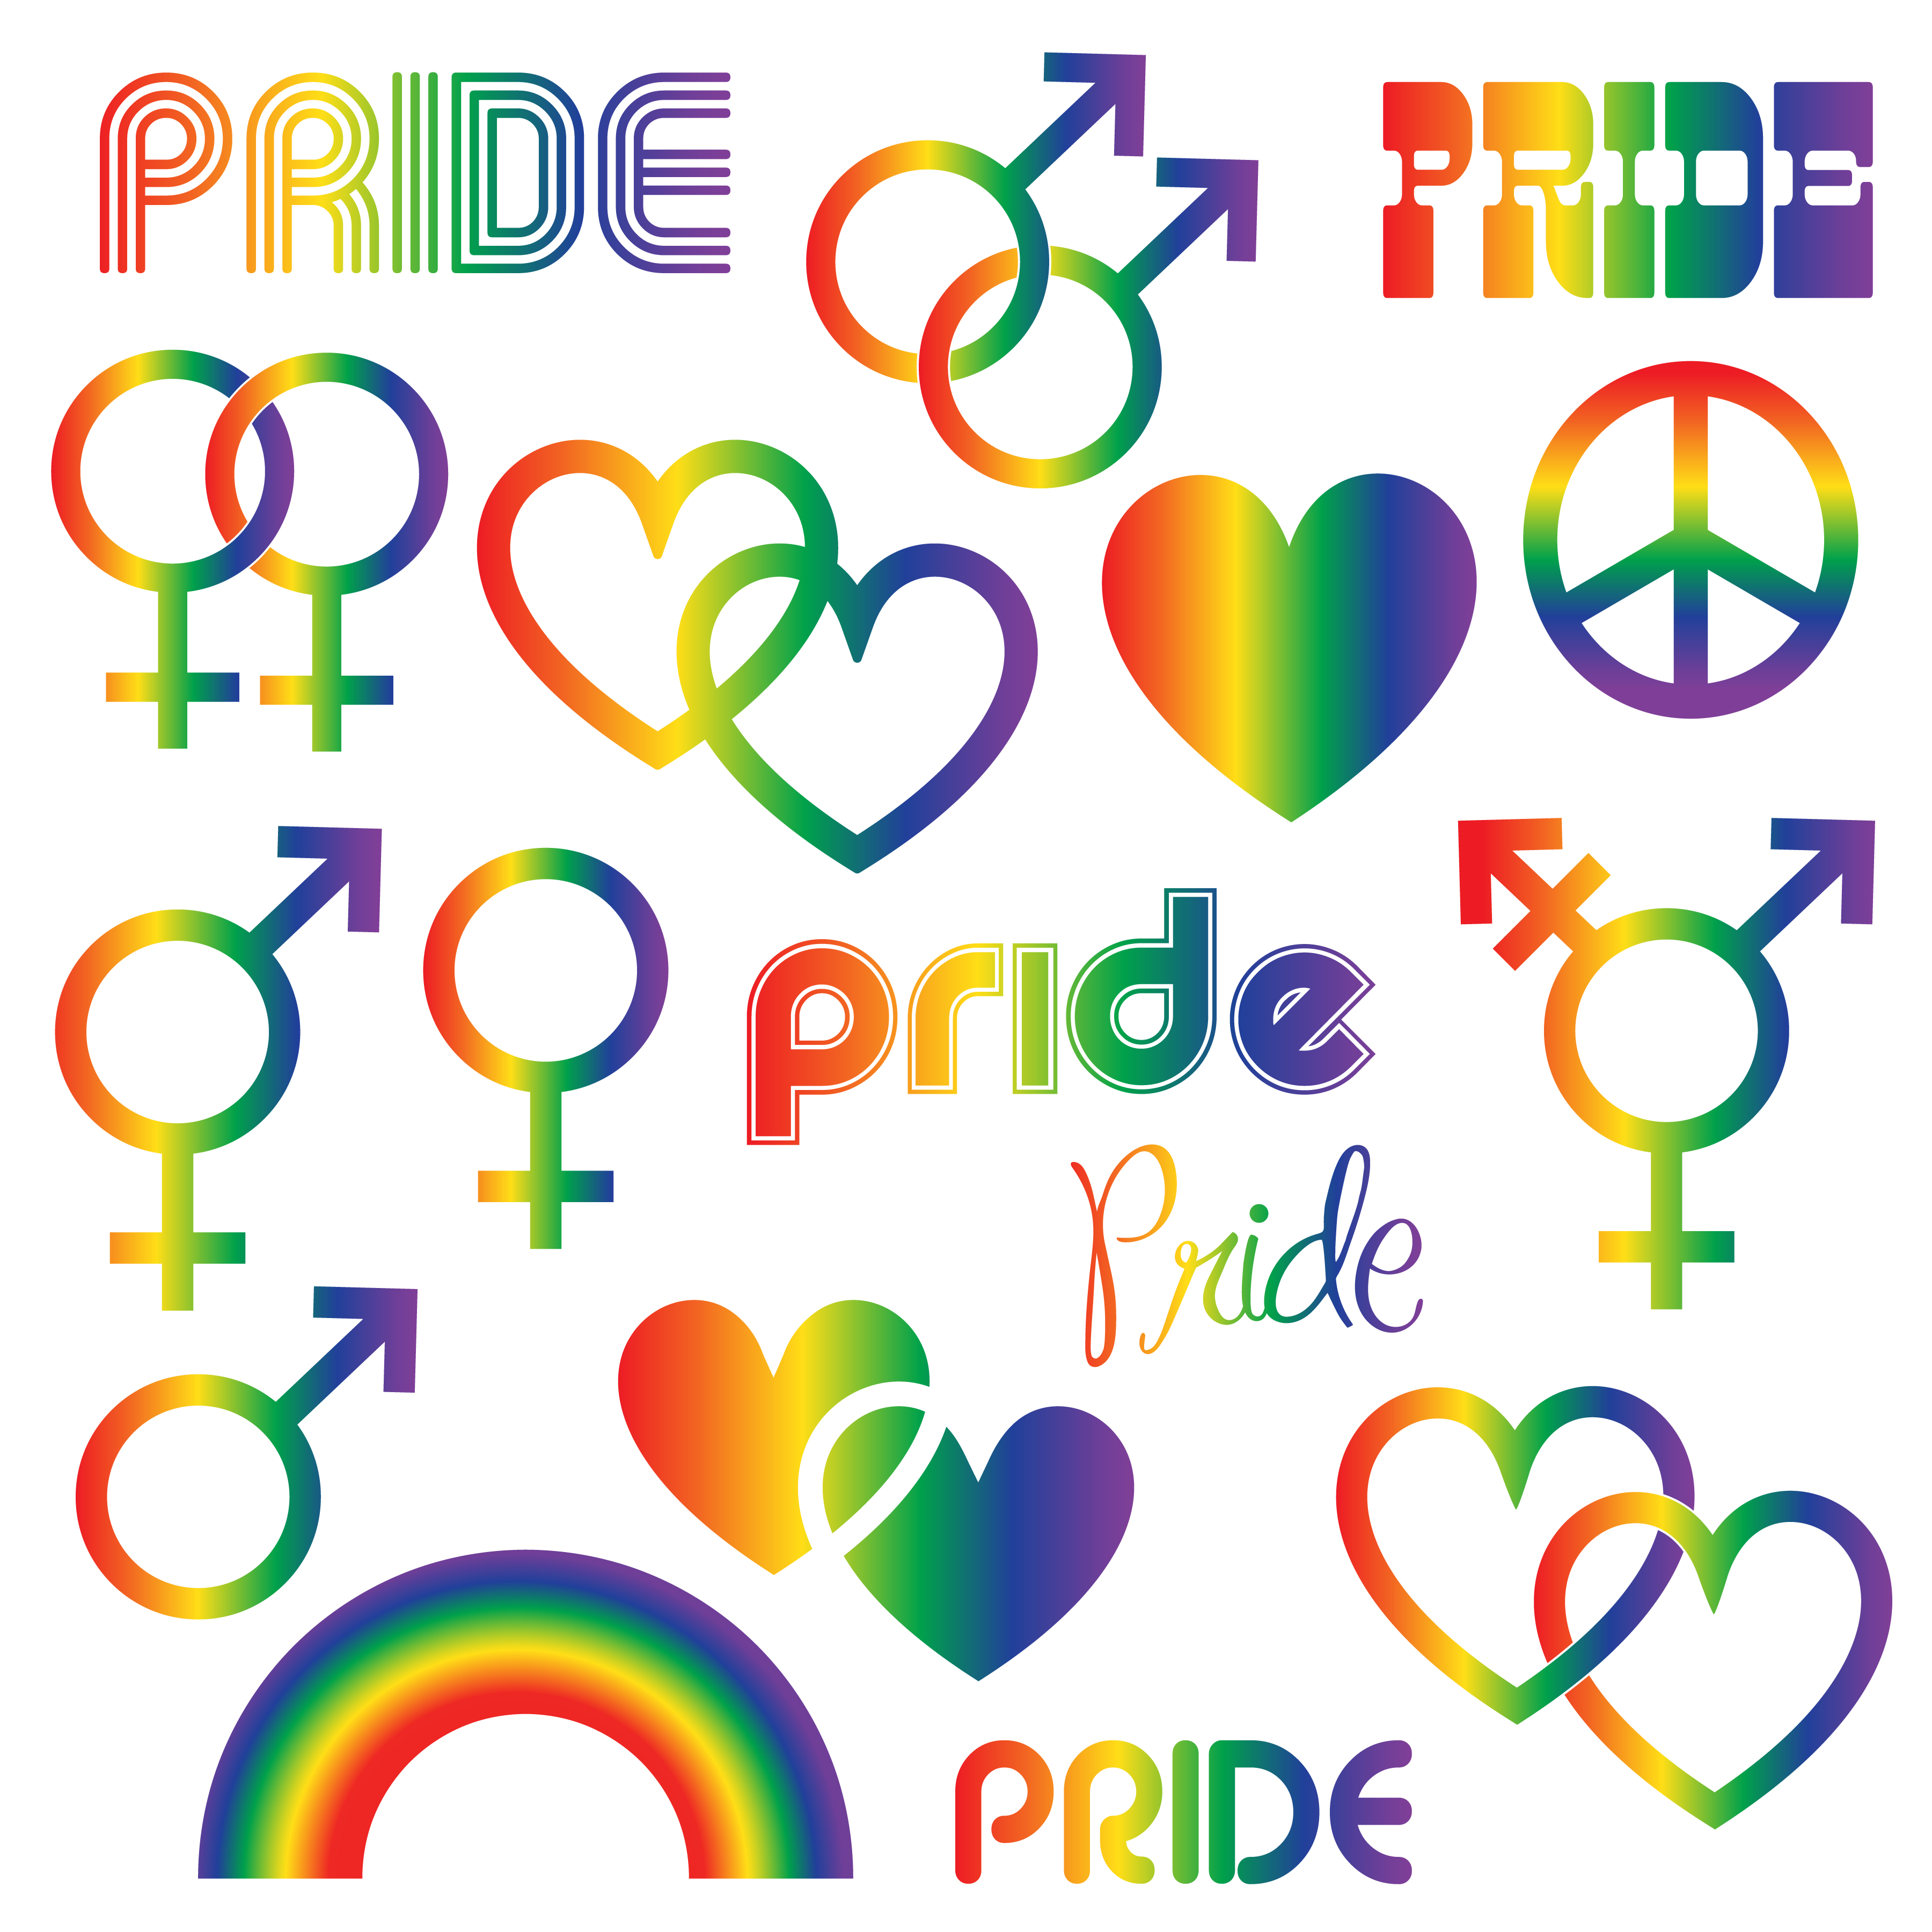 Best Gay Pride Free Vector Art Downloads from the